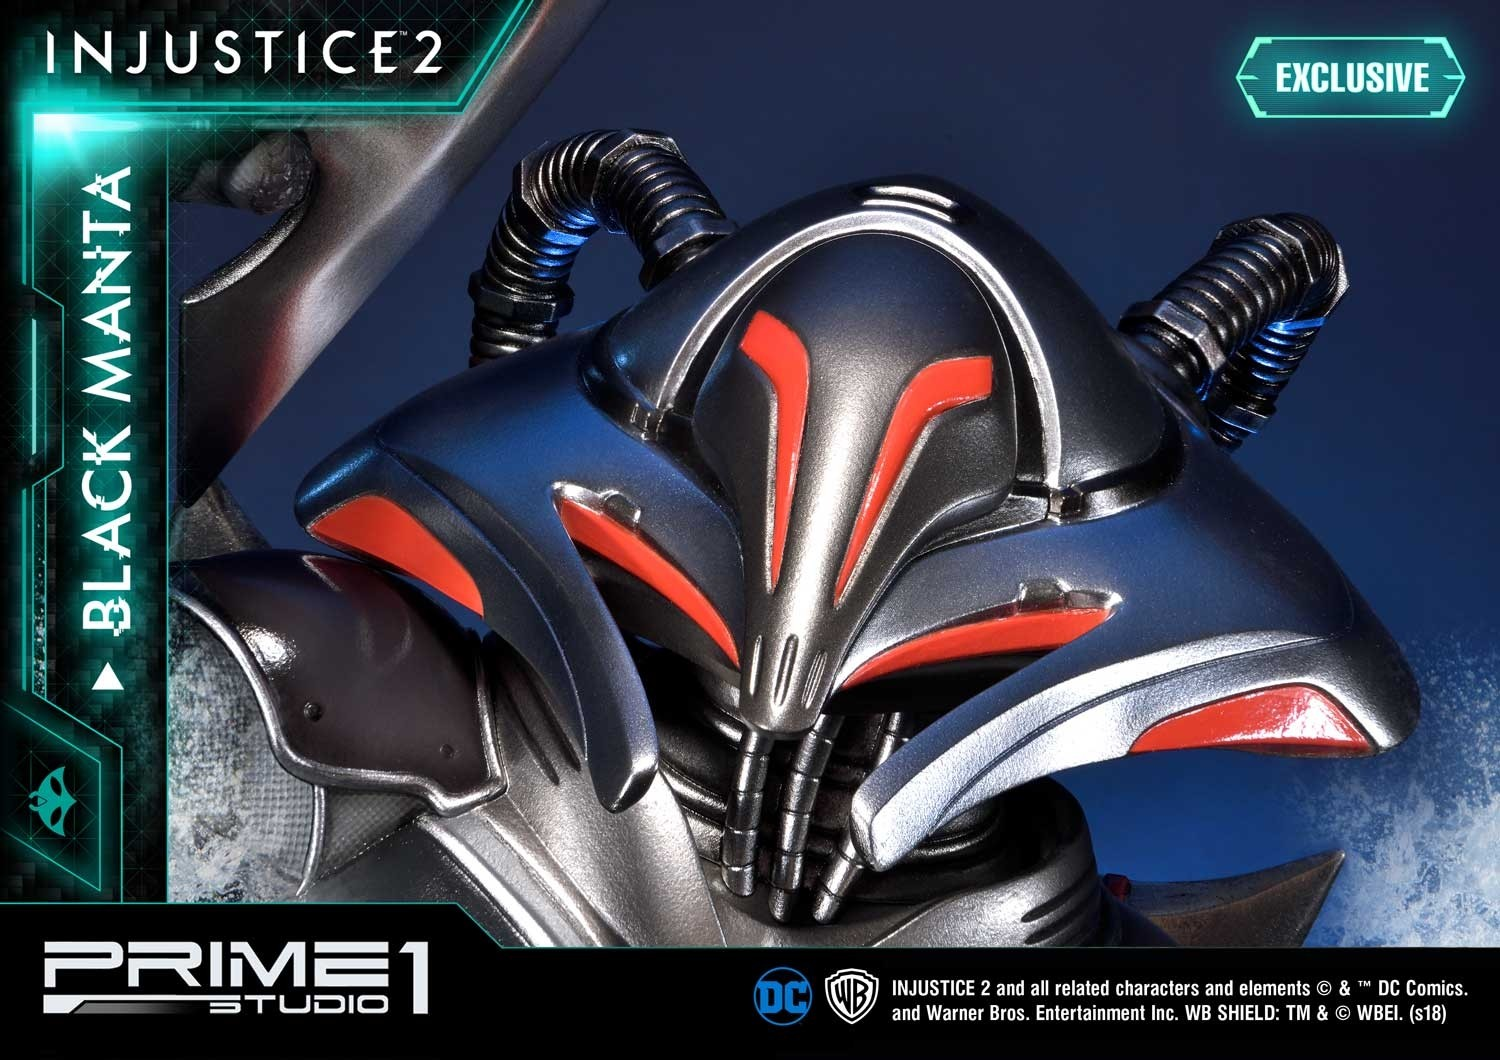 Link a Prime-1-Injustice-2-Black-Manta-EX-002